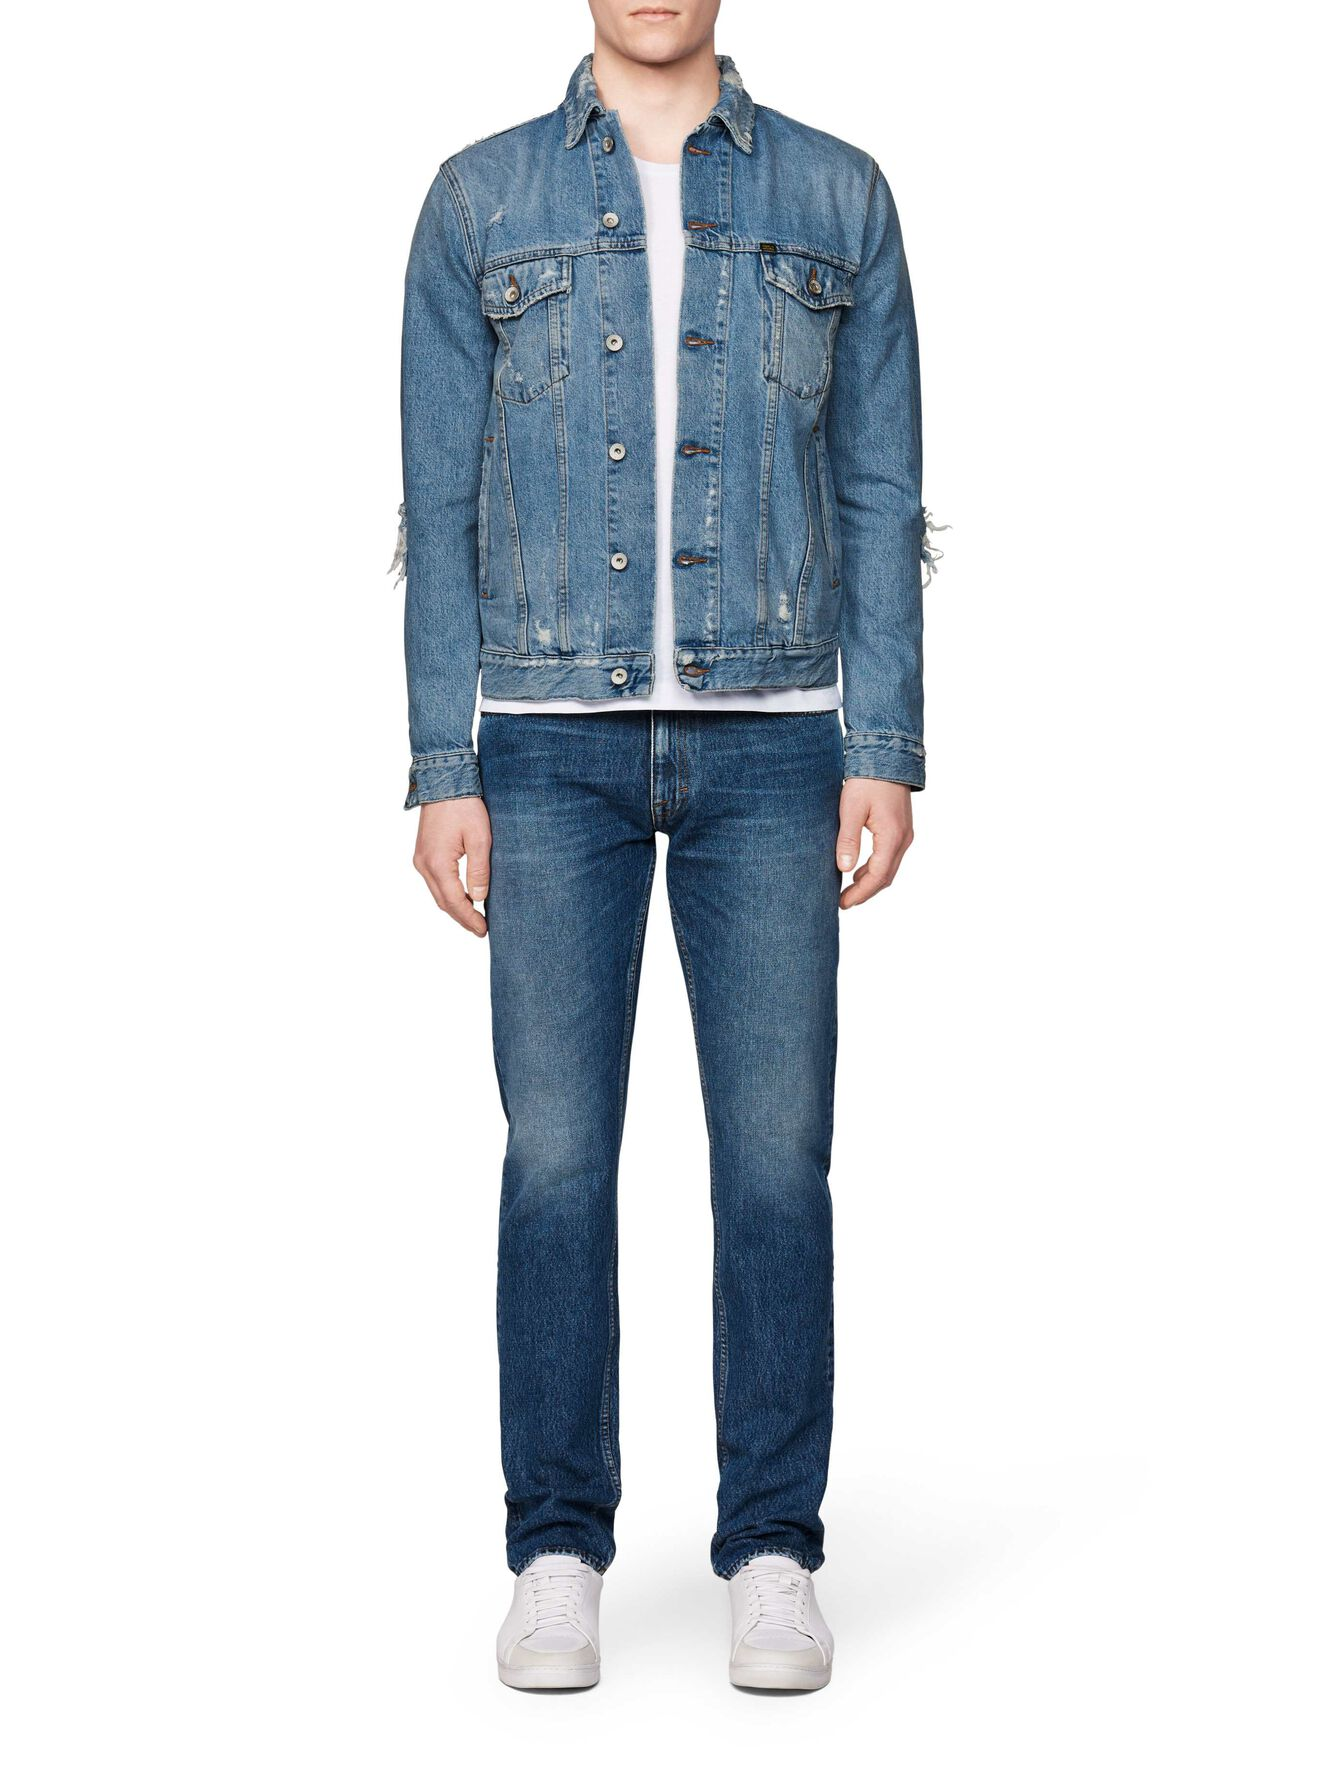 23a0aa09 Primal Jacket in Light blue from Tiger of Sweden ...